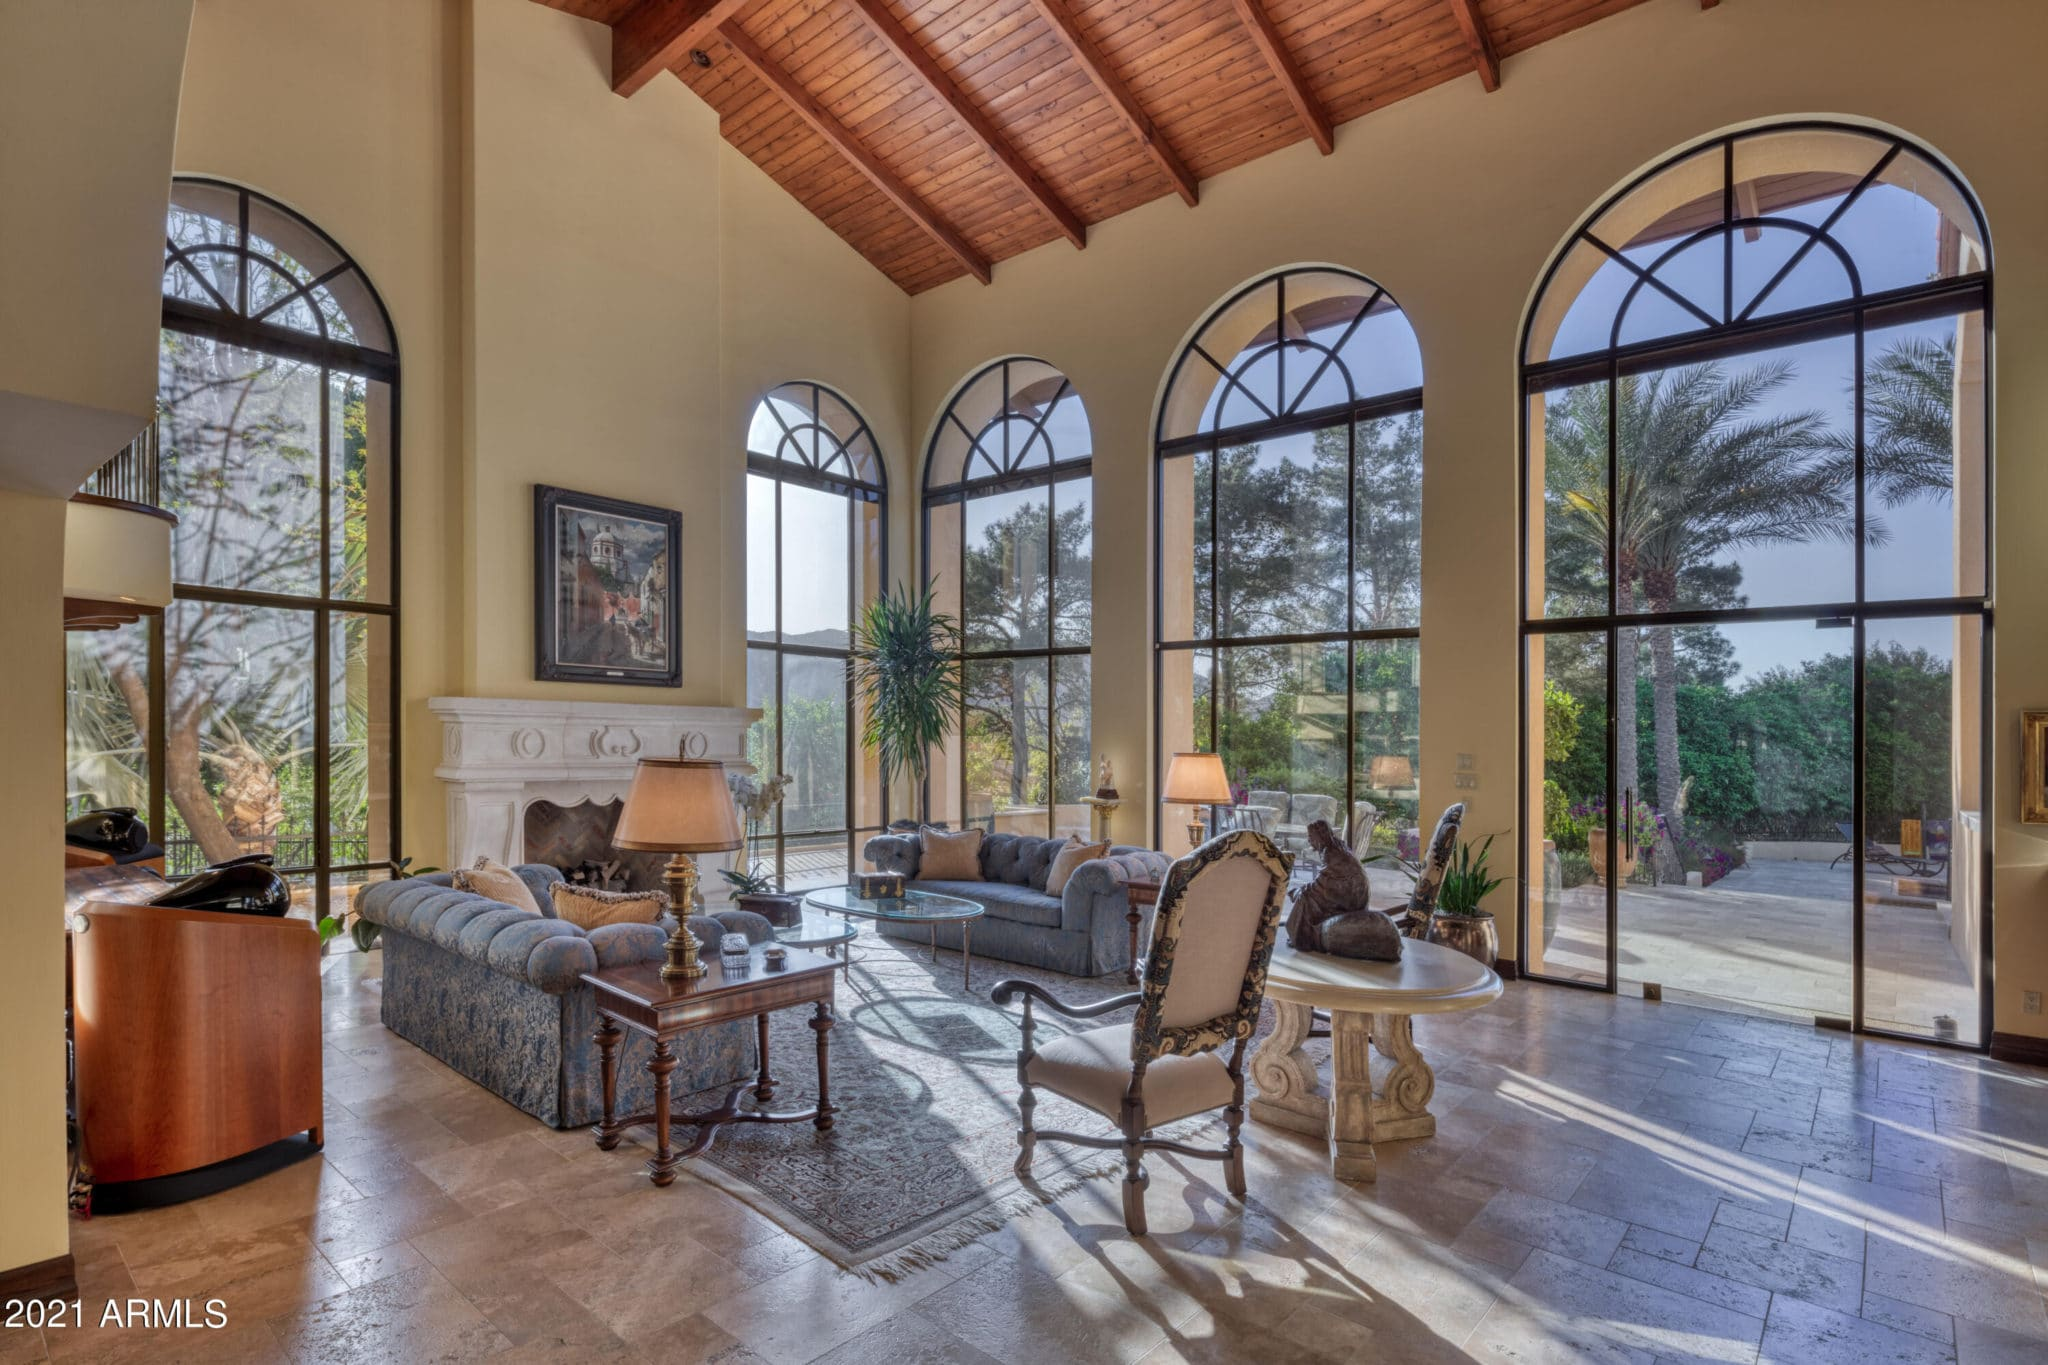 5426 Morrision arched windows by Cal Christiansen